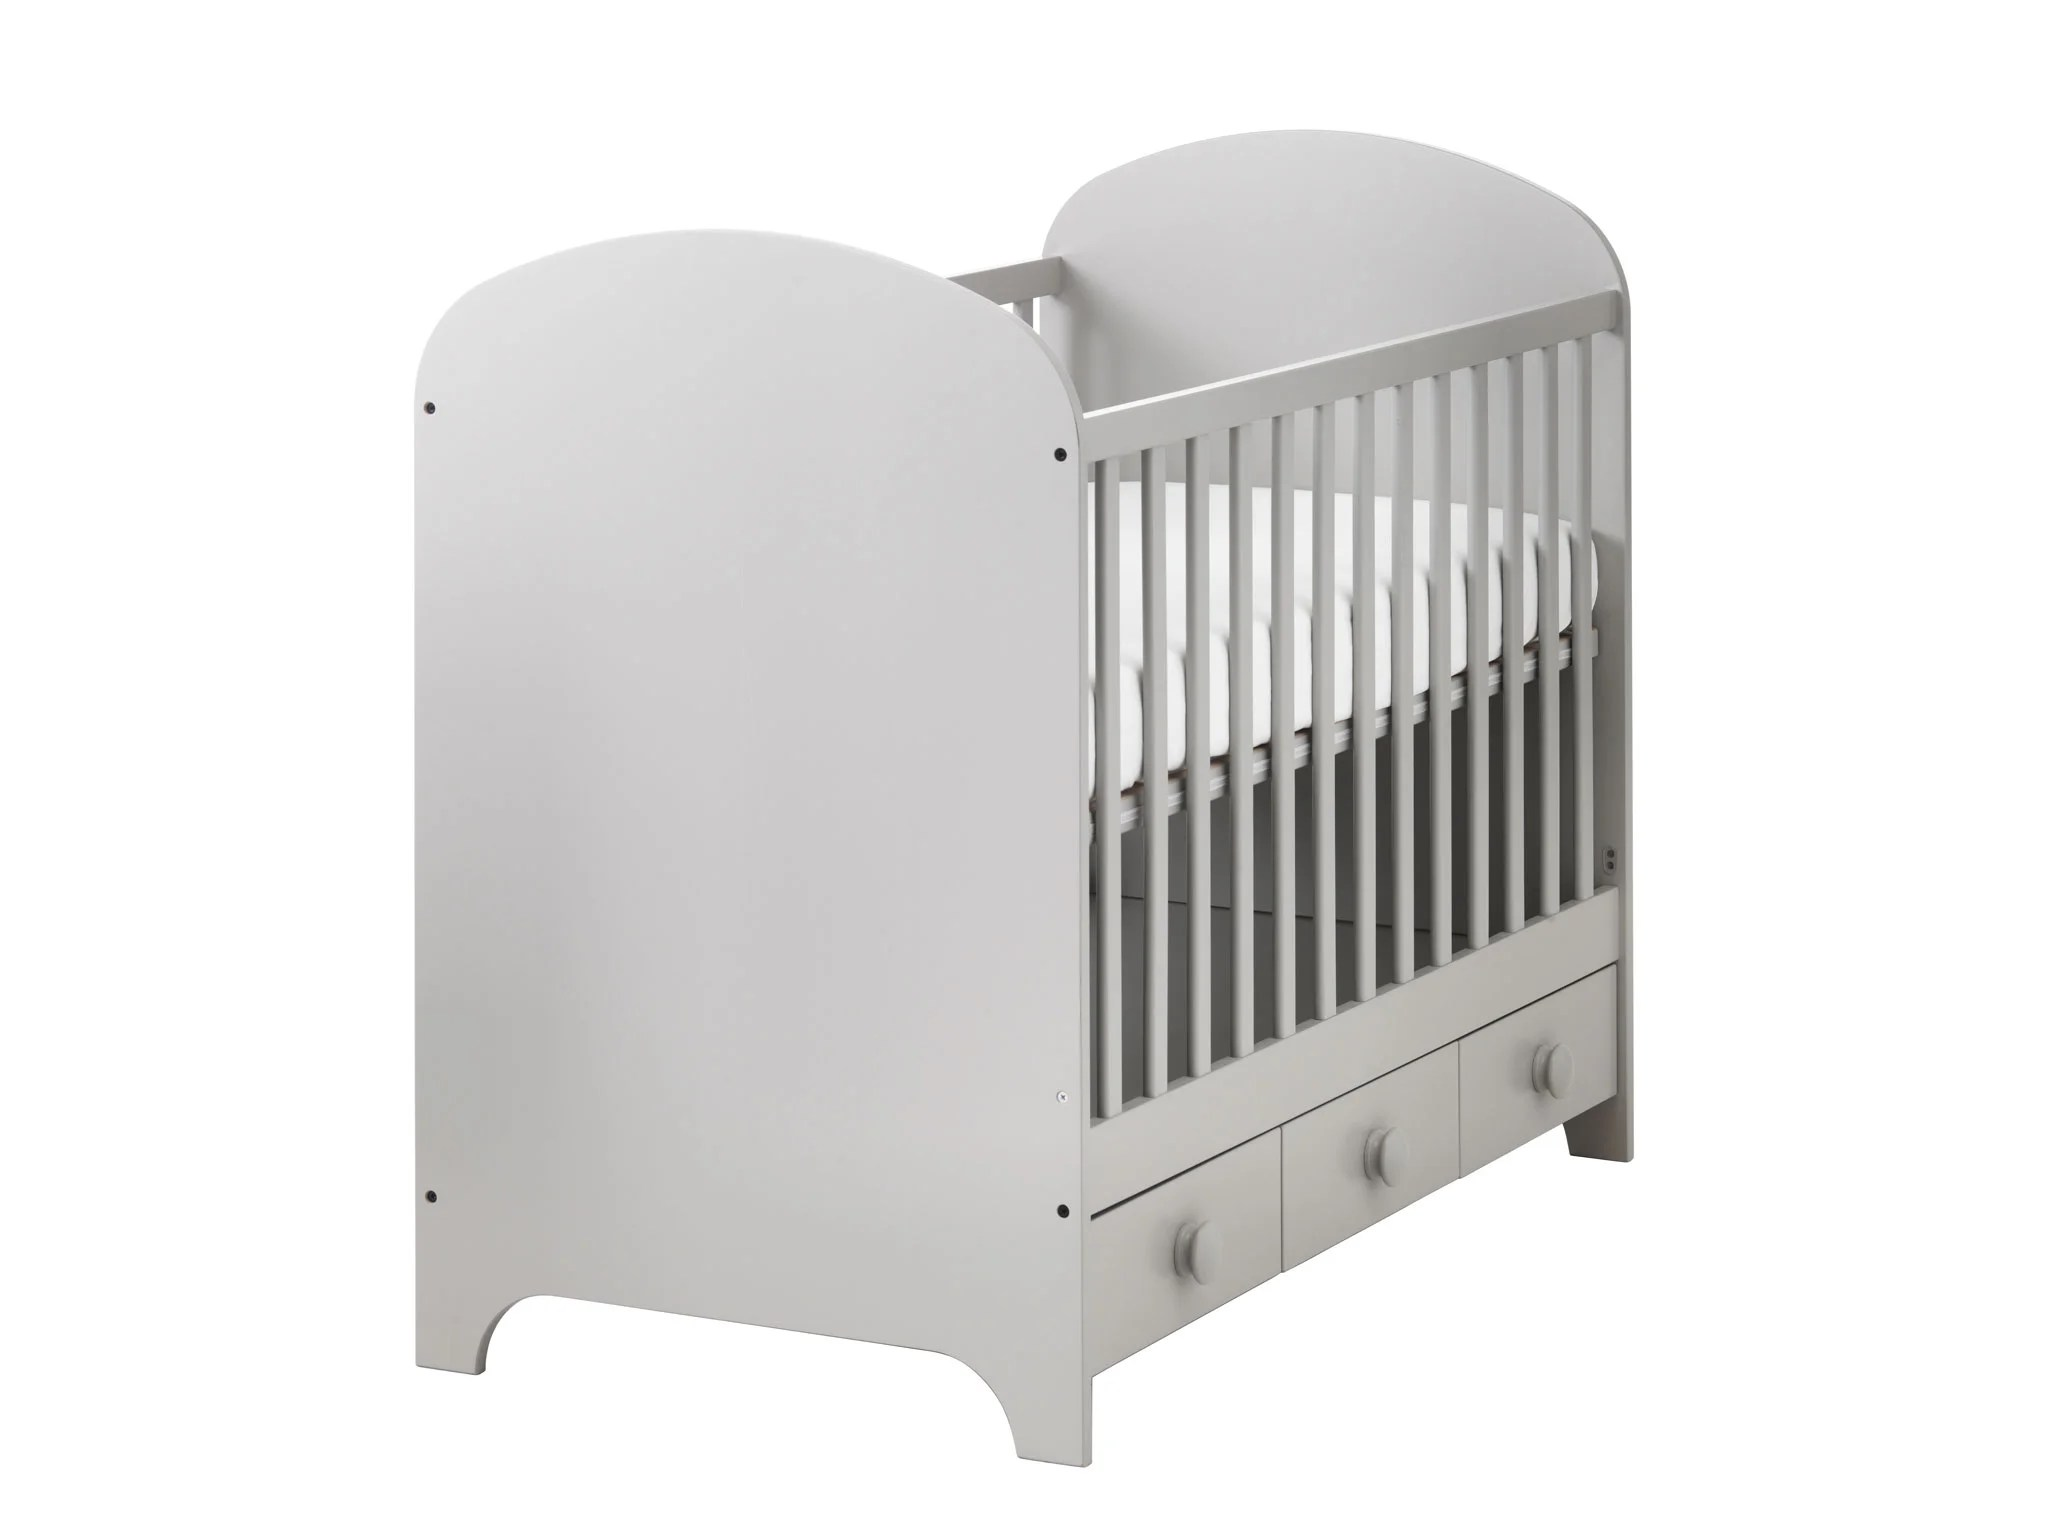 bitty baby high chair shapes thomas jefferson swivel furniture white crib canopy and modern wooden child design